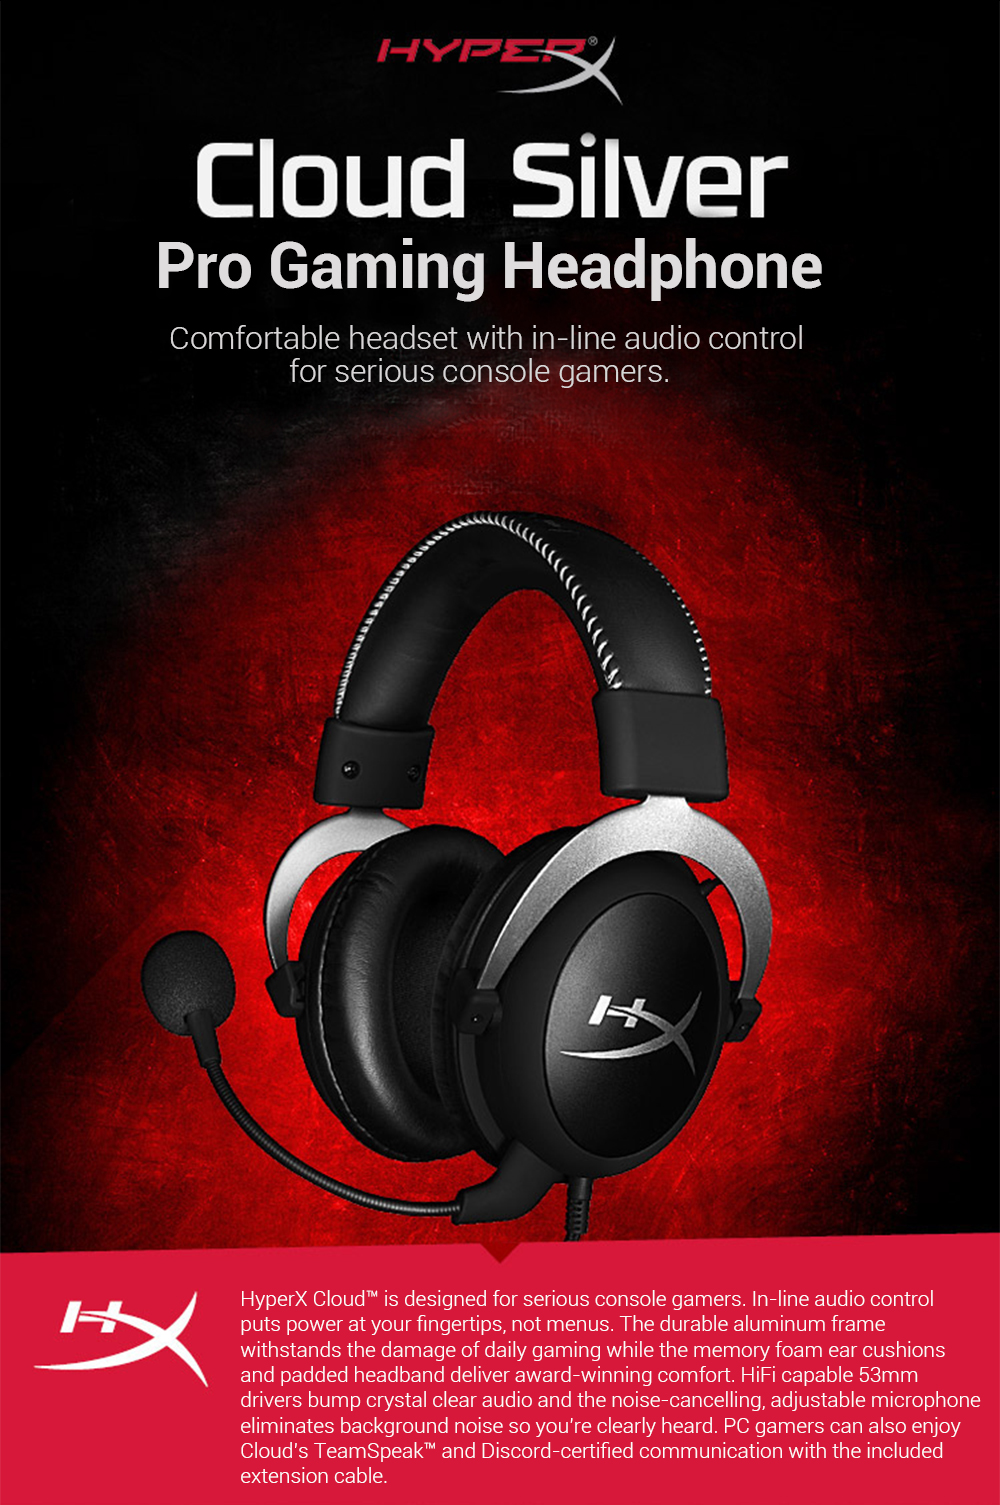 Kingston HyperX Cloud Silver Gaming Headphone with Microphone (11)